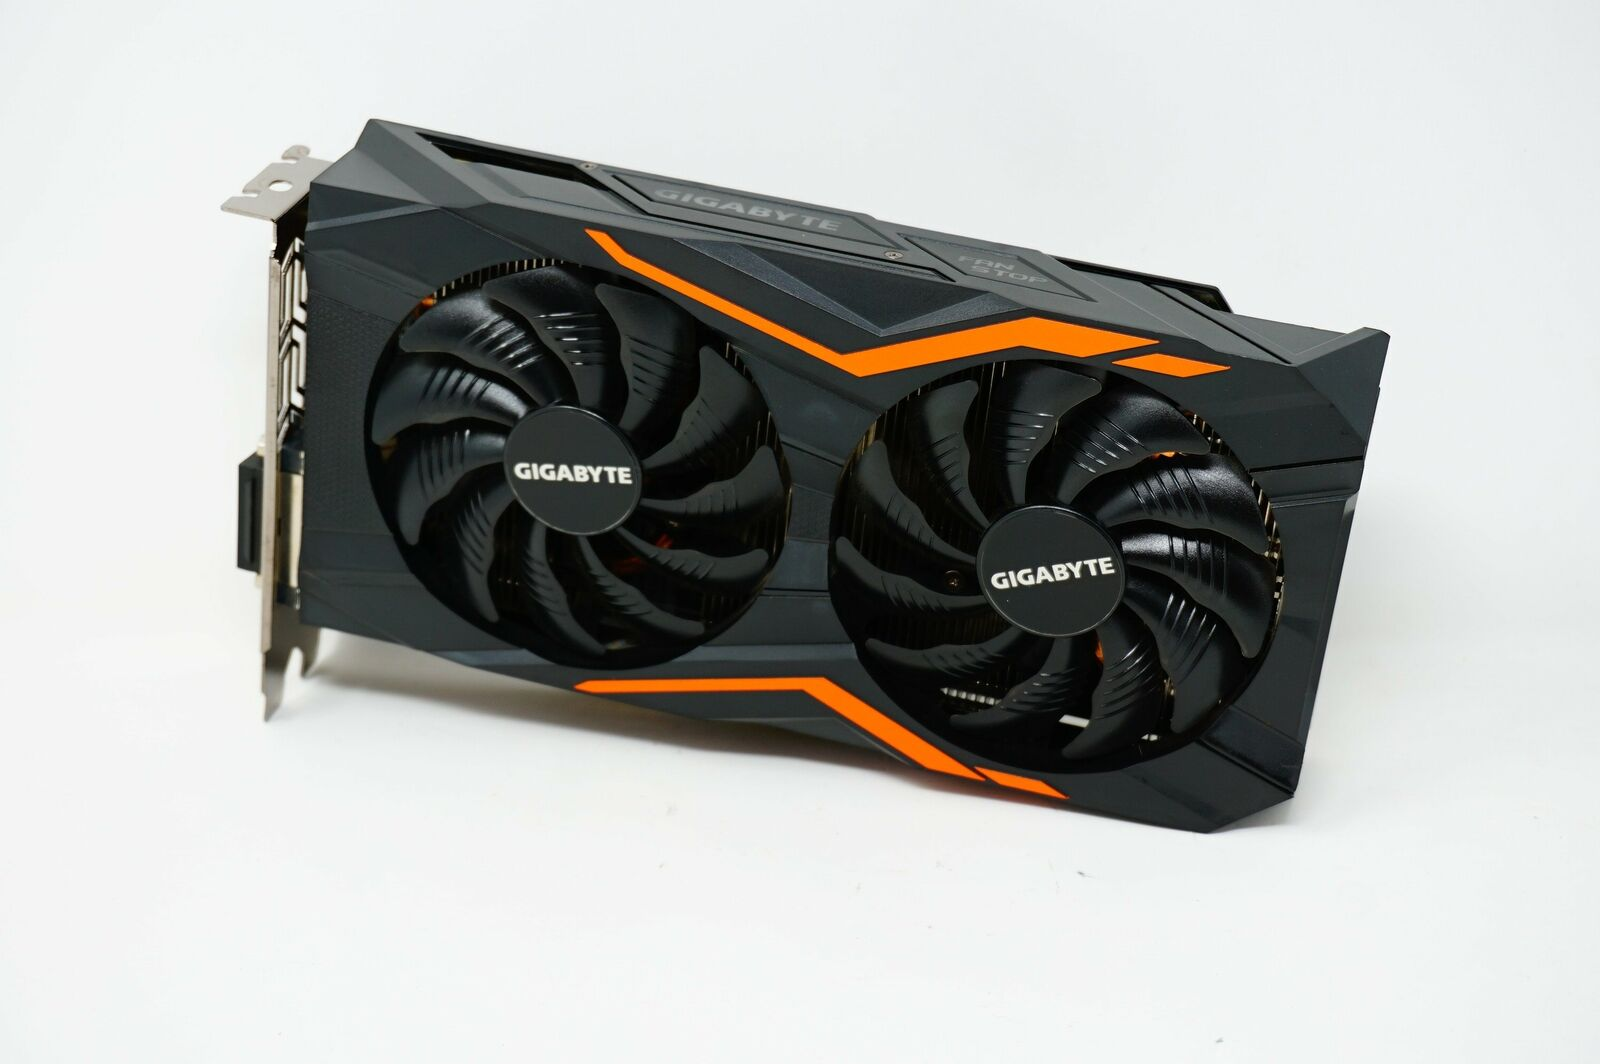 Gigabyte GeForce GTX 1050 Ti 4GB G1 Gaming 4G Windforce Graphics Card 2